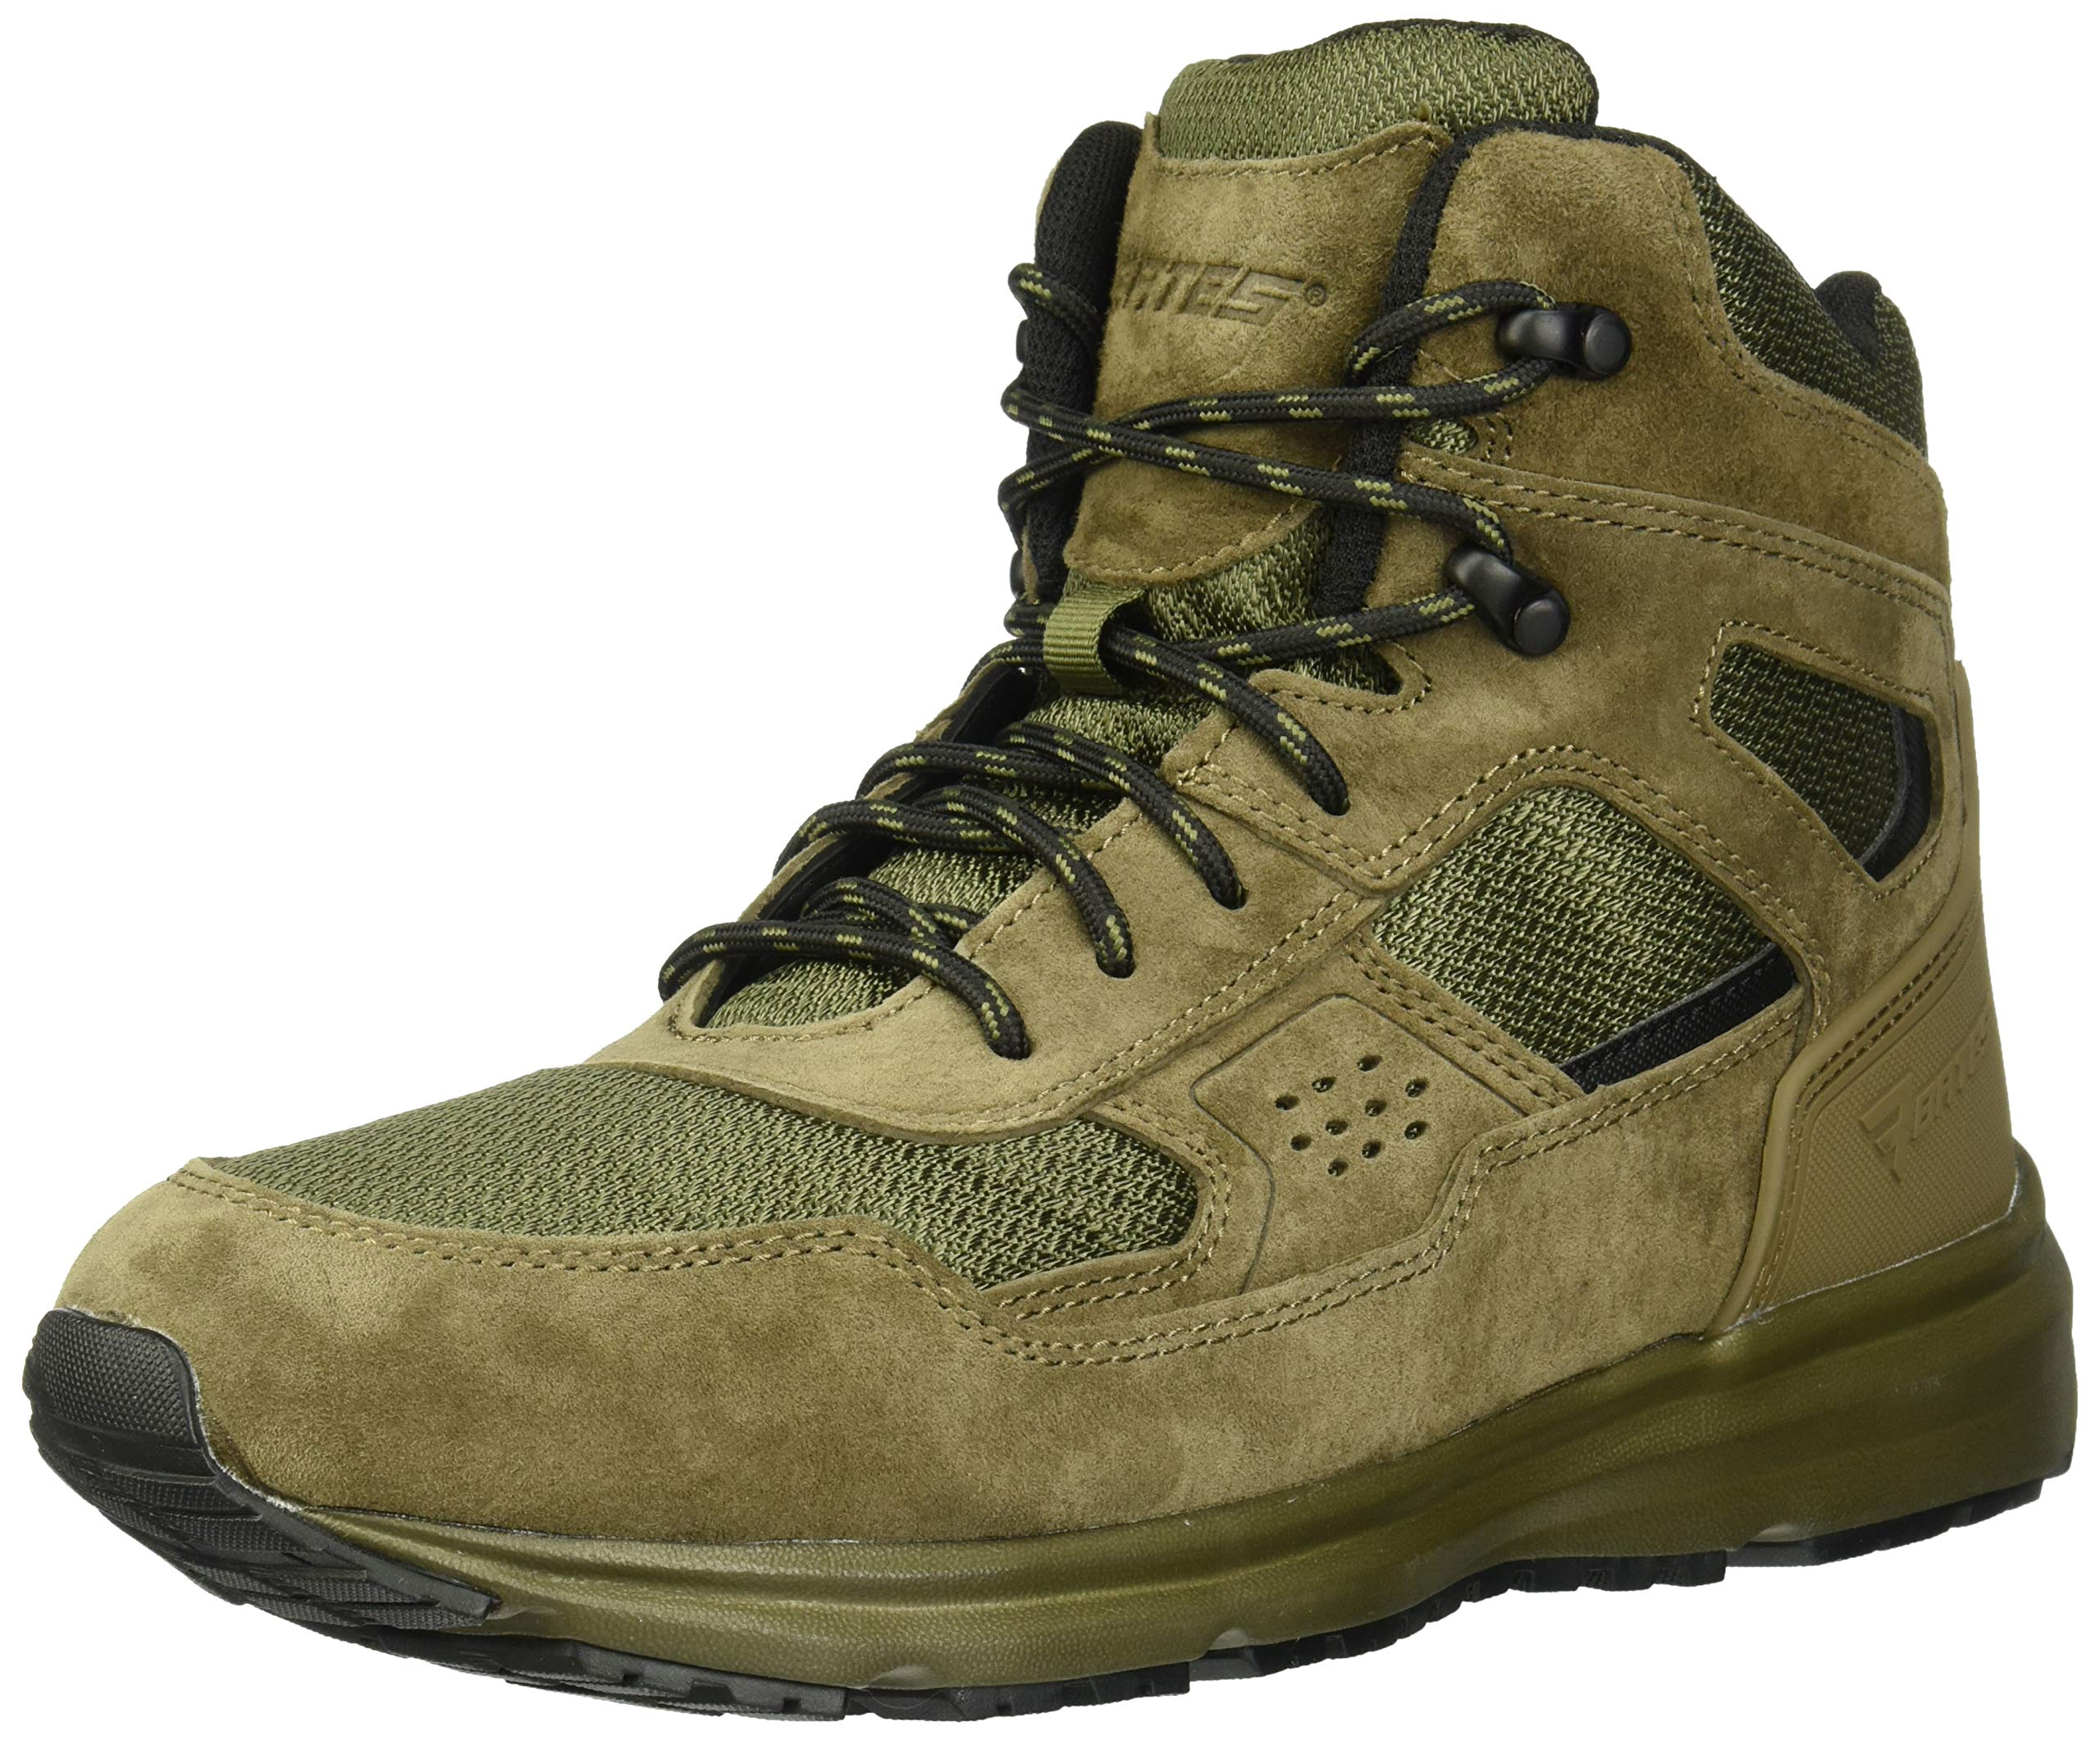 Bates Men's Raide Sport Mid Fire and Safety Boot, Canteen, 12 M US by Bates